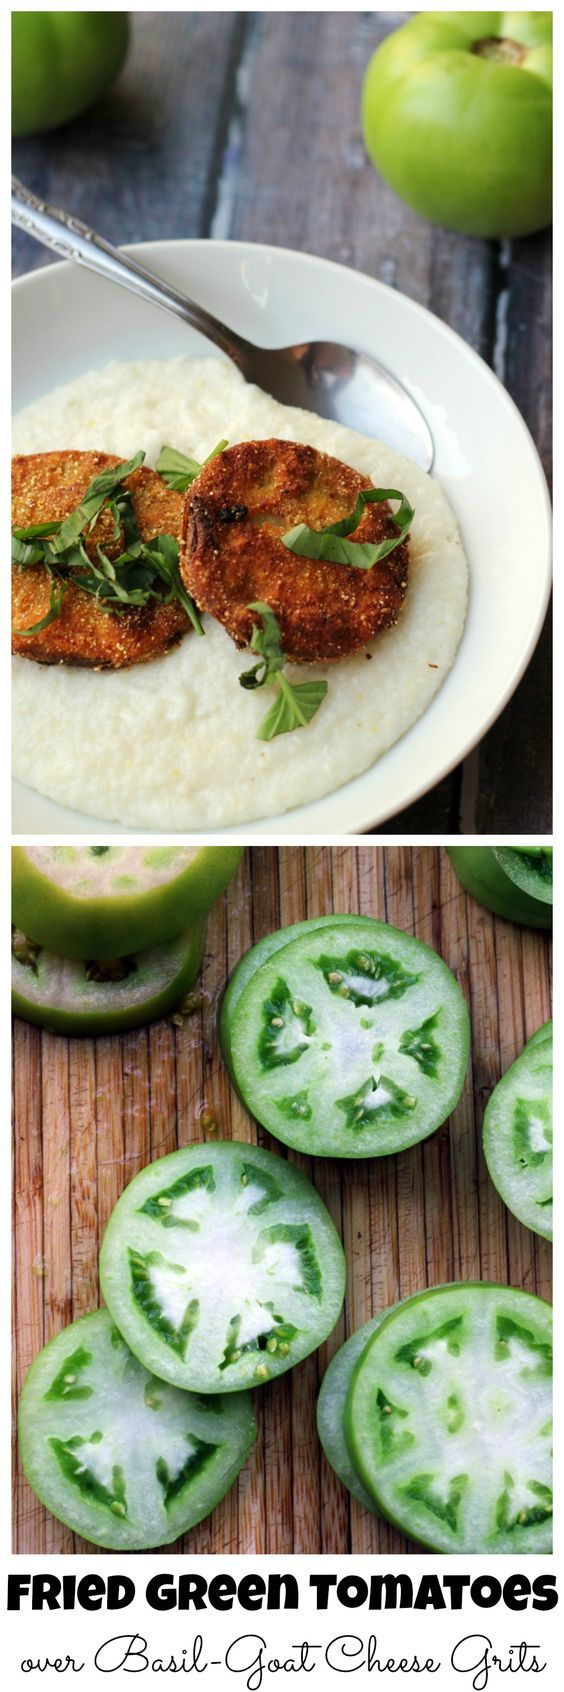 Fried Green Tomatoes Over Basilgoat Cheese Grits